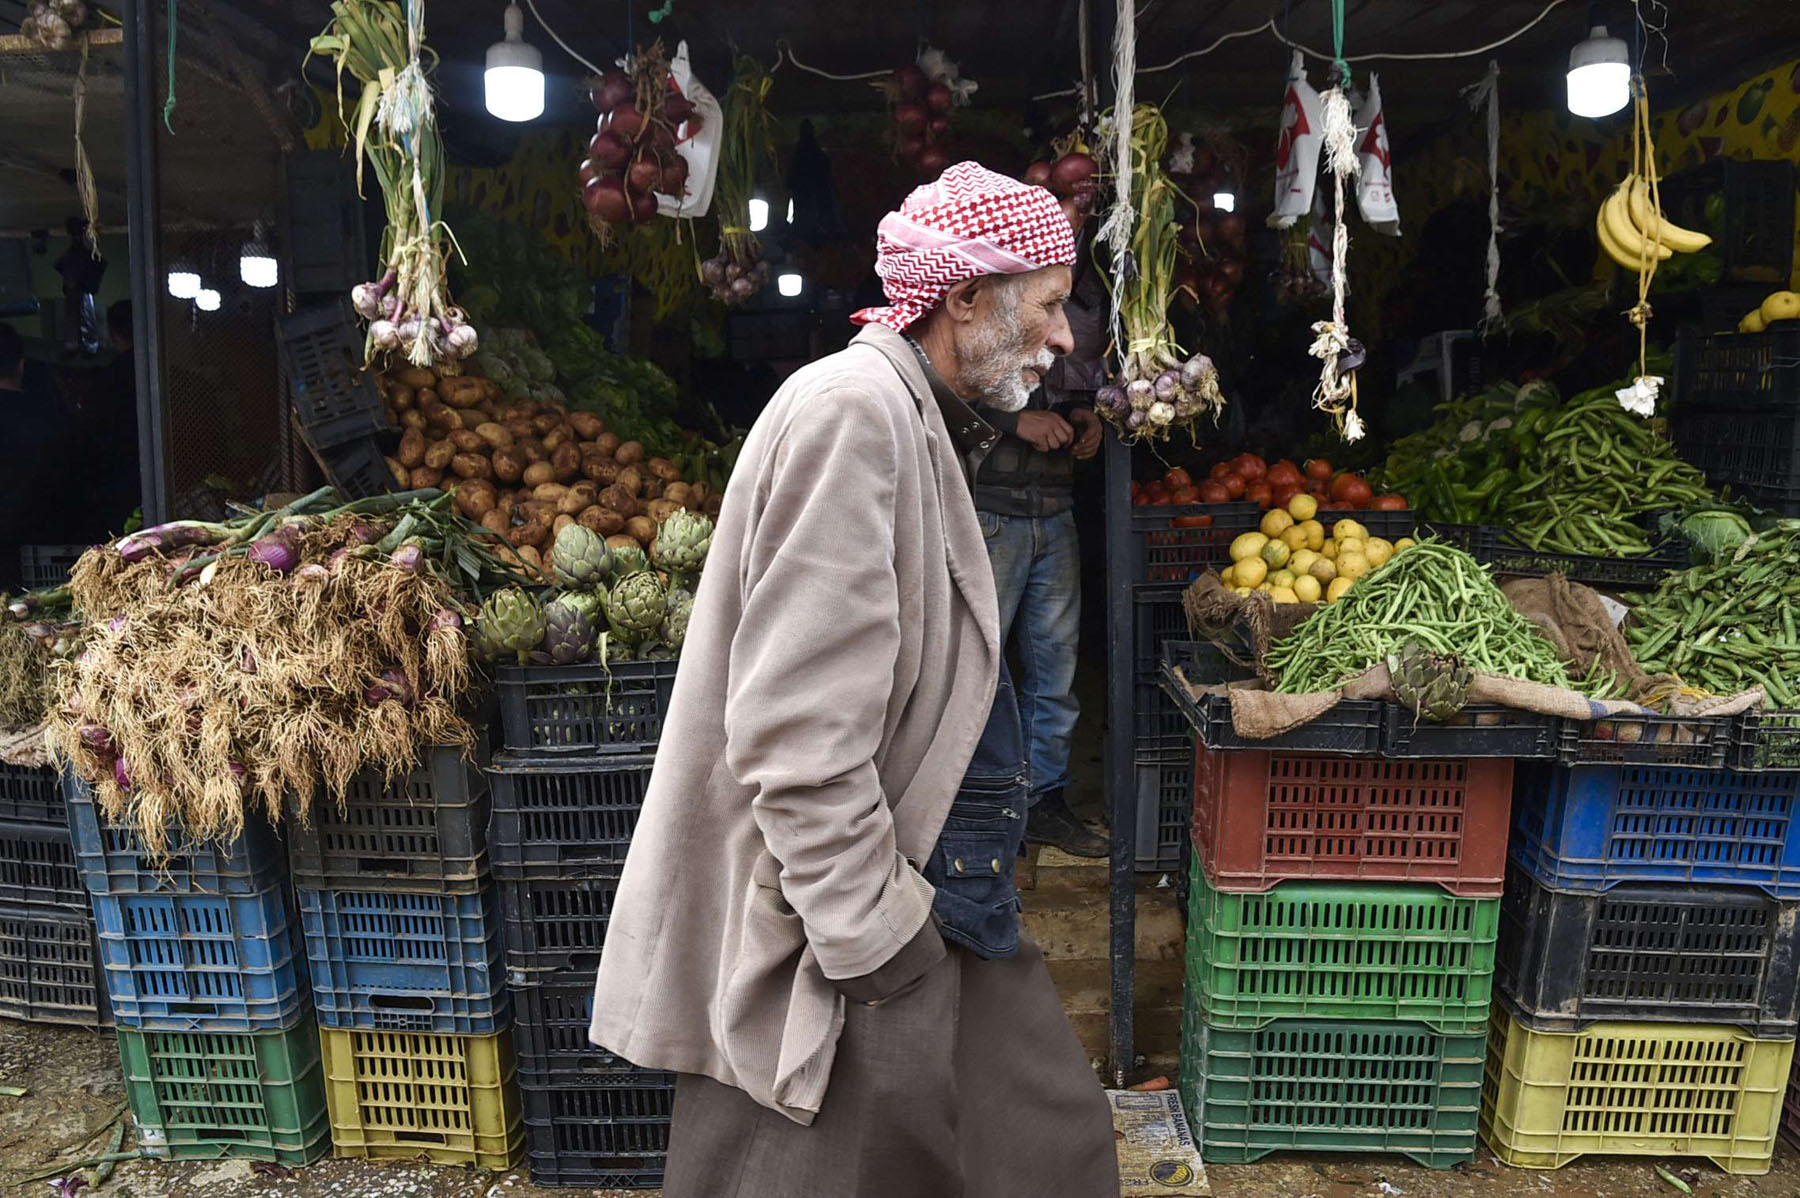 An Algerian man walks by a greengrocer's stall in a market of the Khraicia district, 20km south of the capital. (AFP)